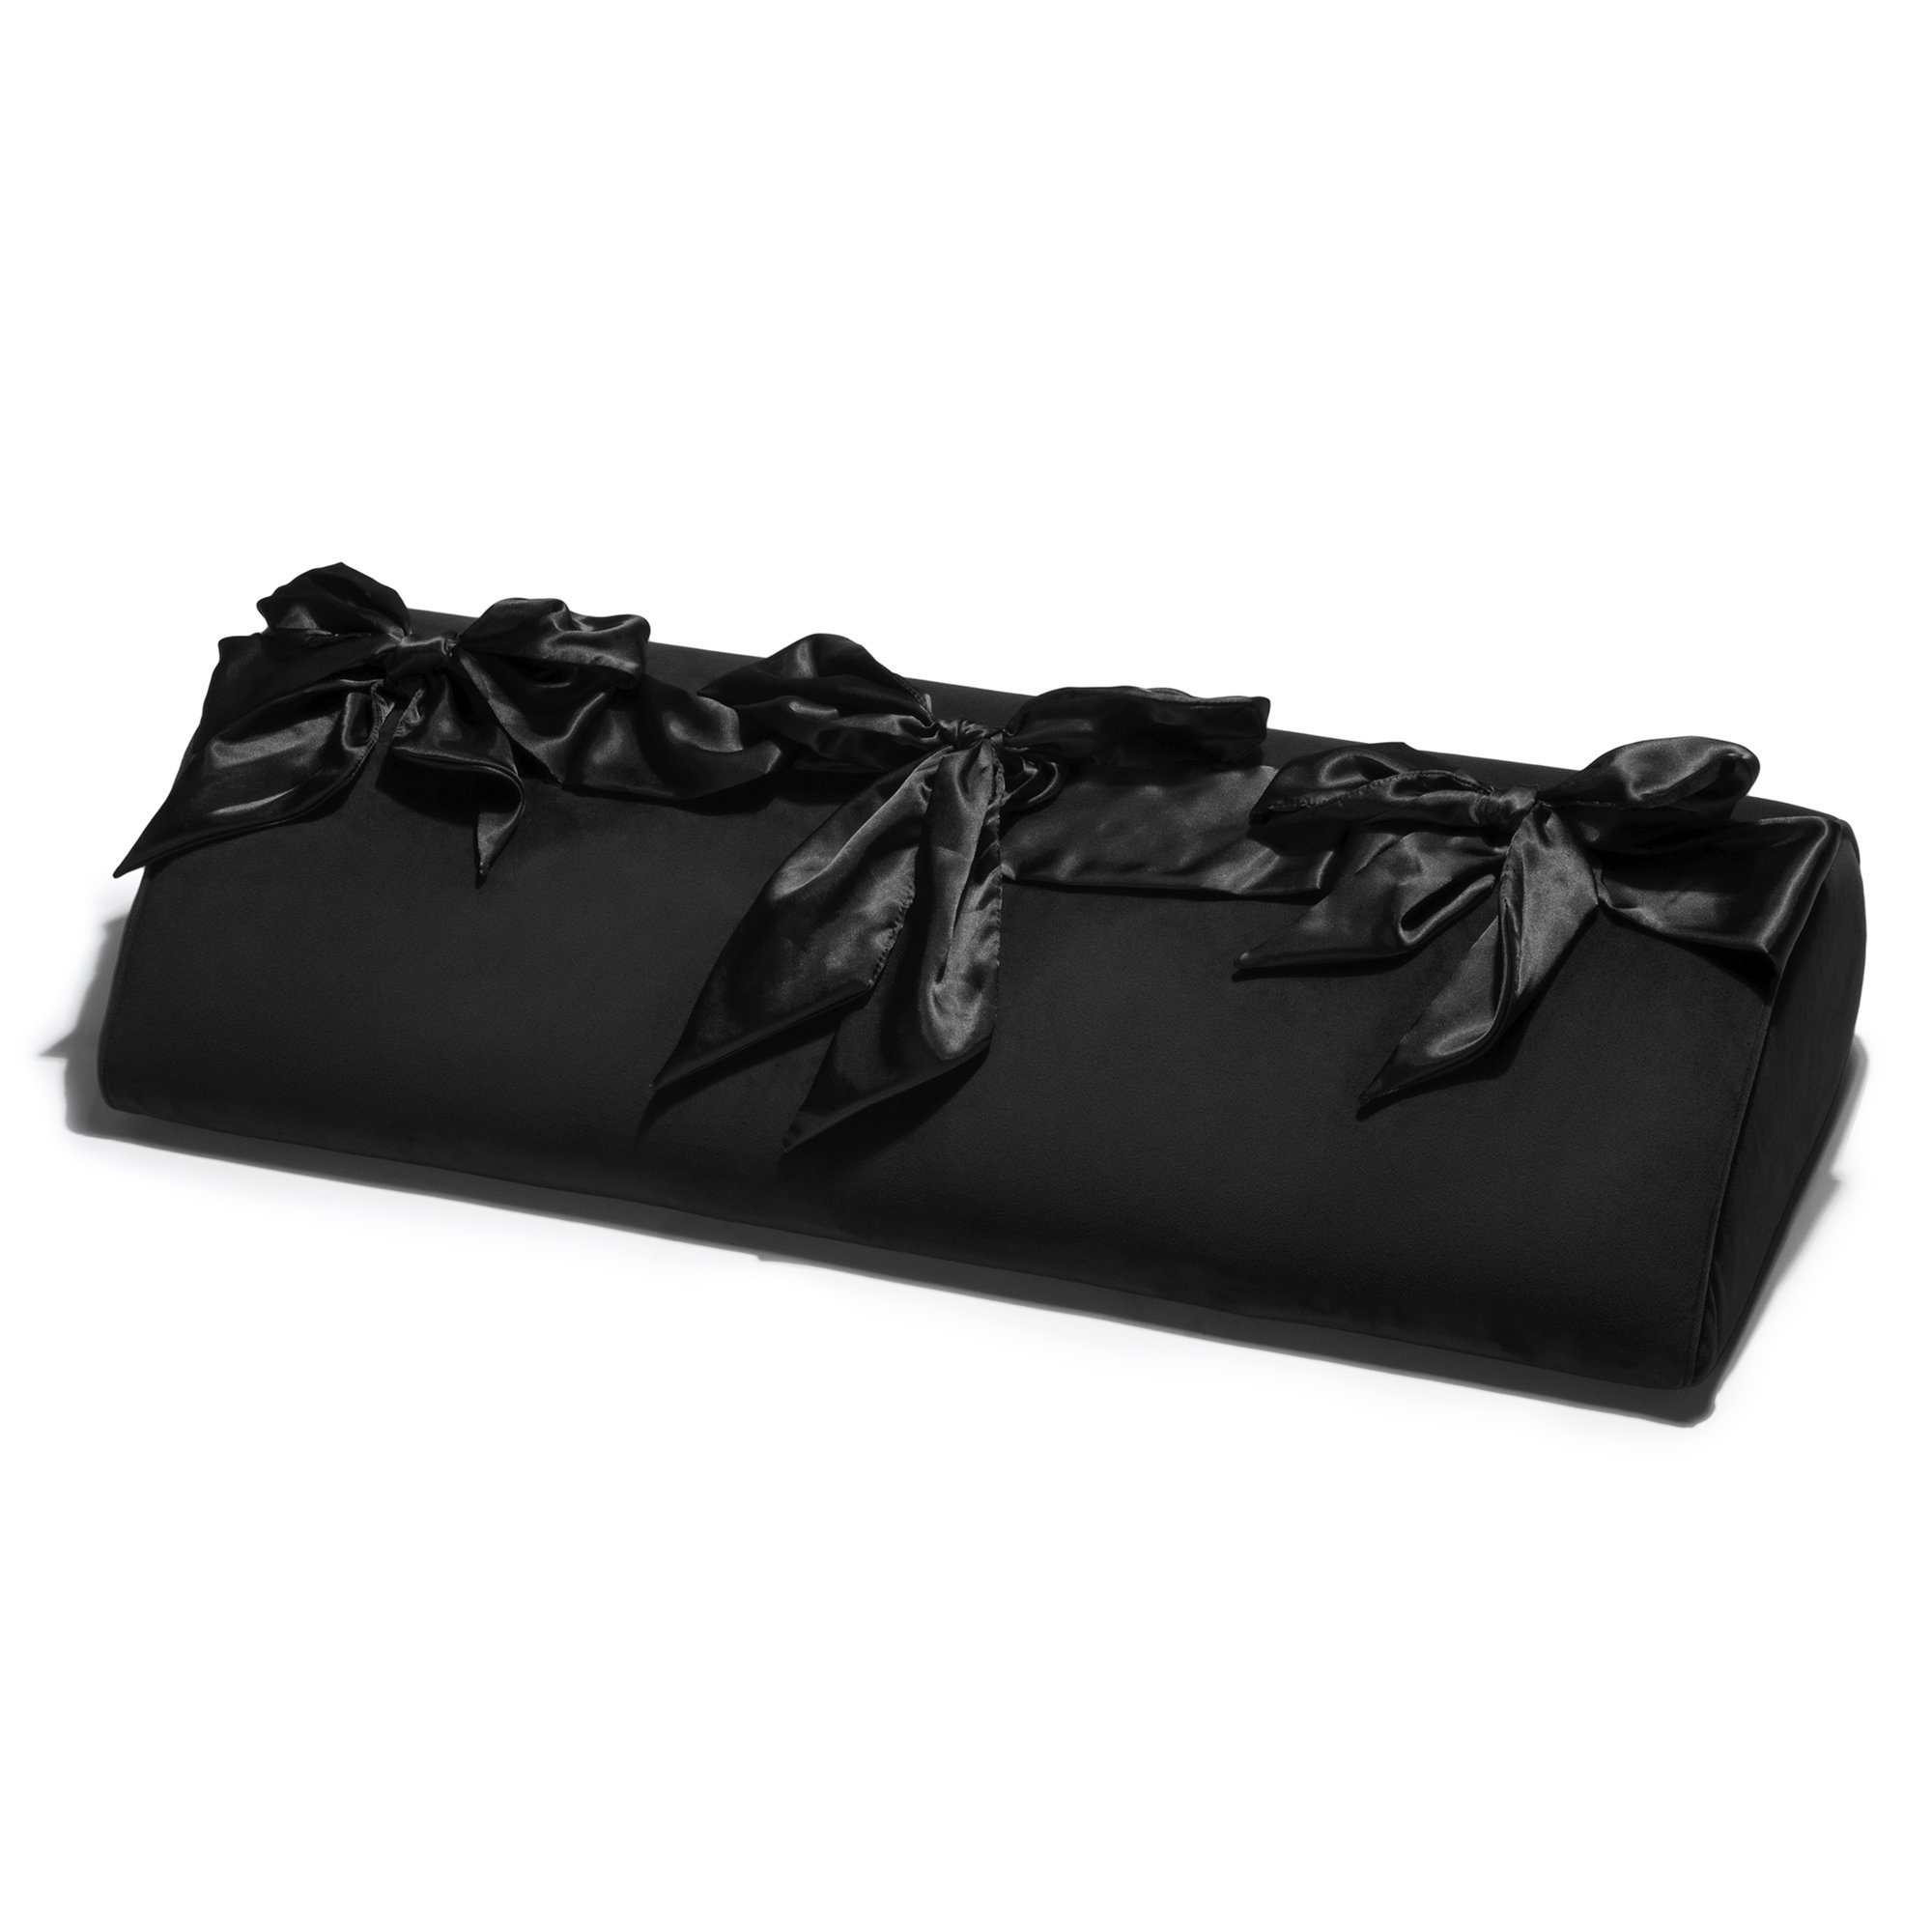 Liberator Decor Series Lovearts Pillow, Black